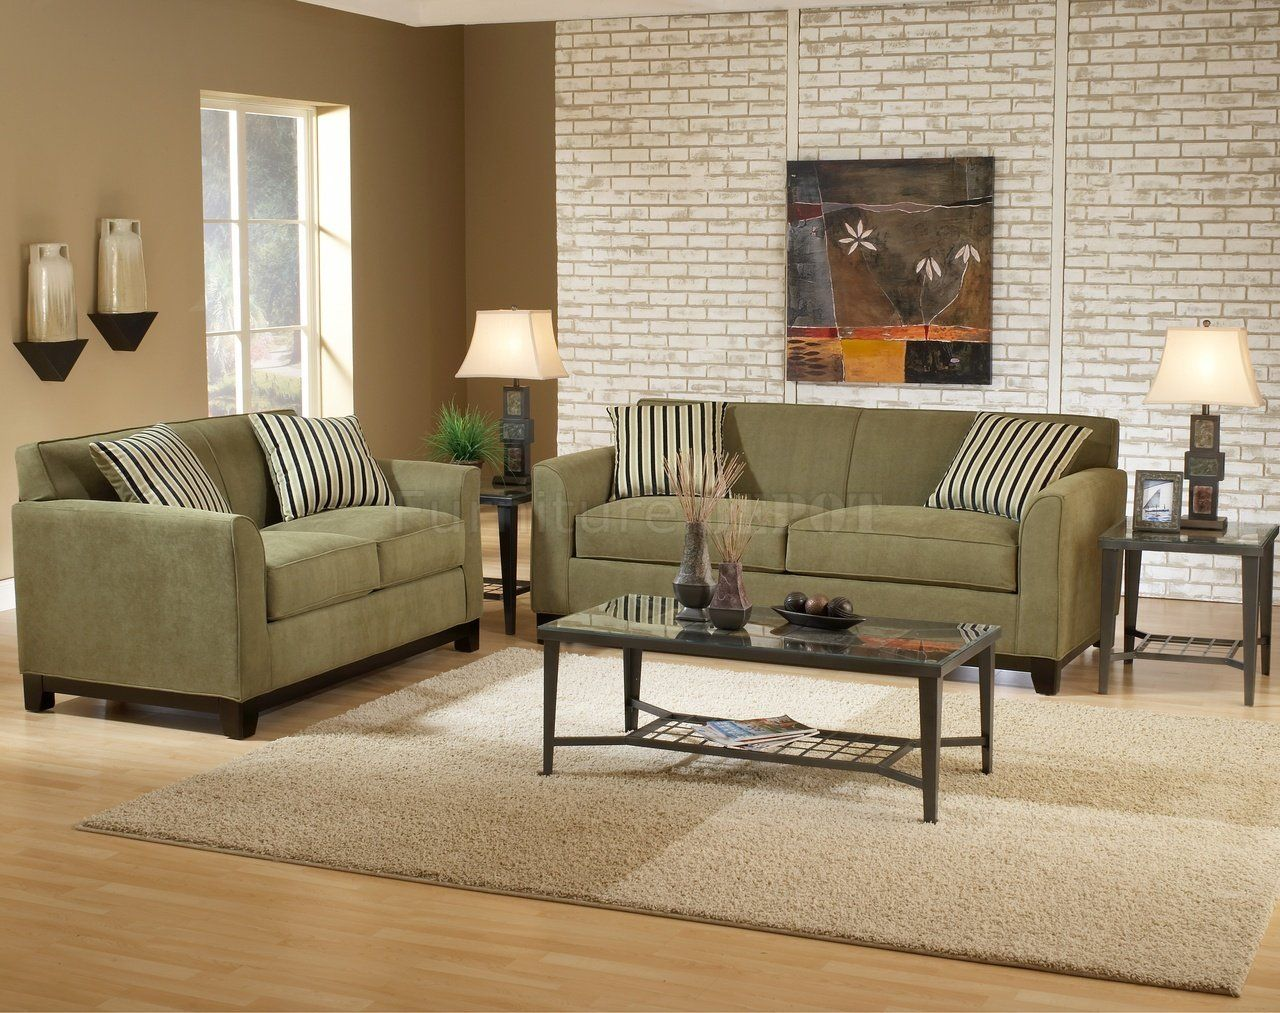 rooms living room sofa modern living rooms living room furniture green